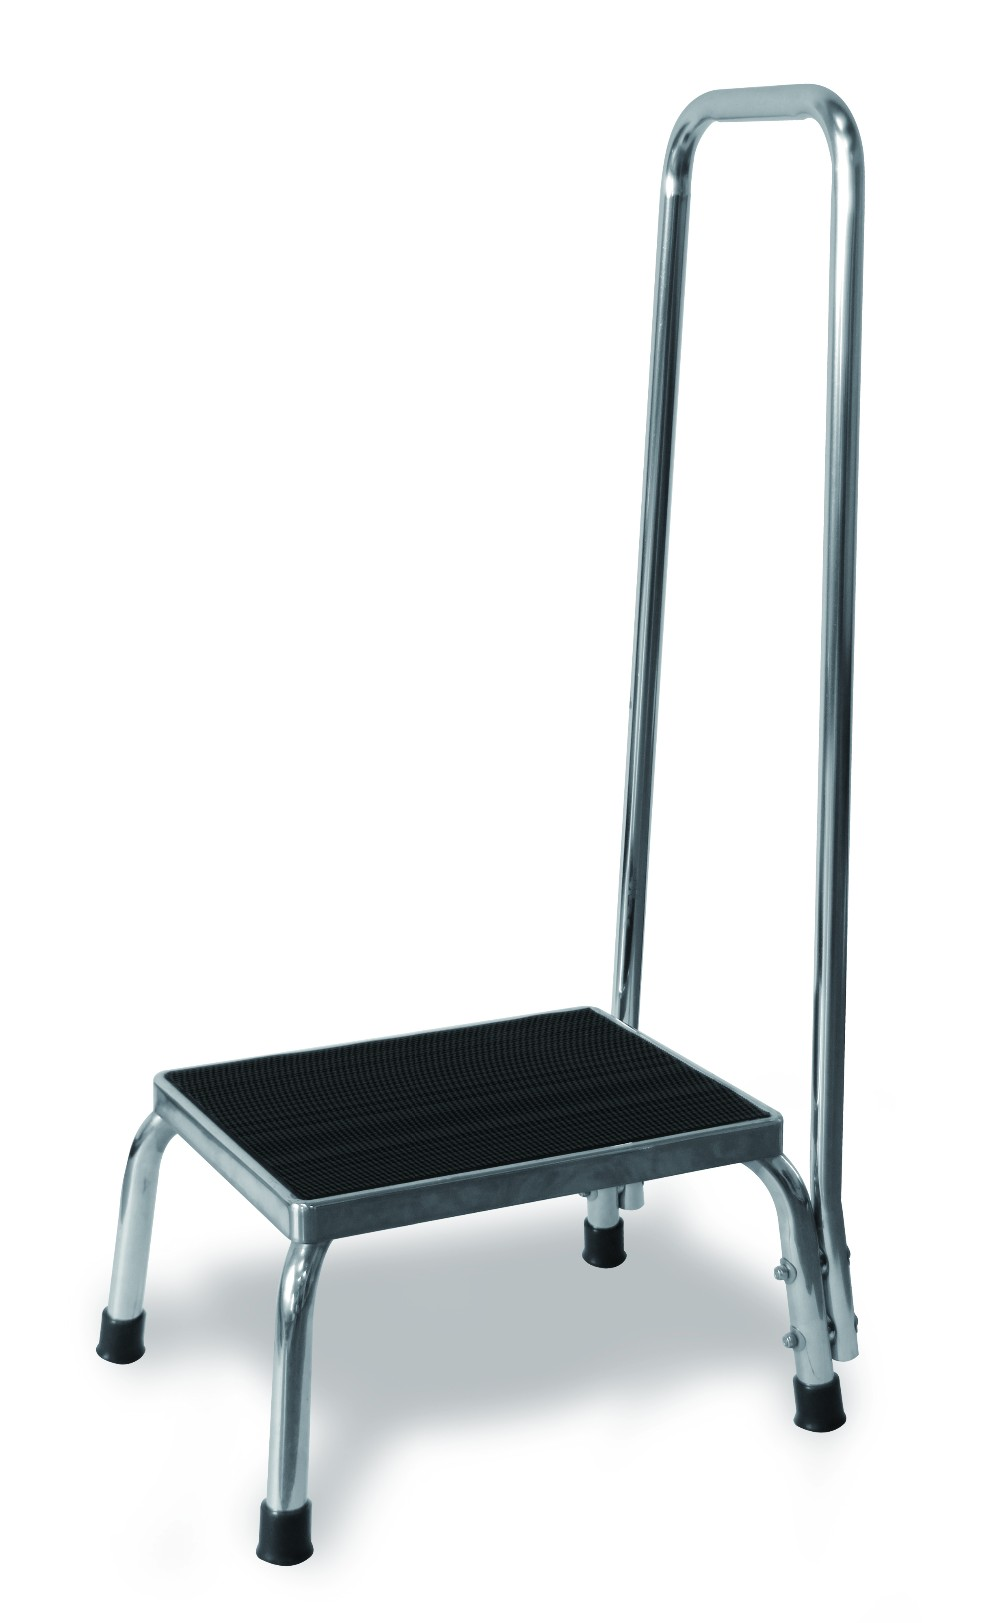 Bed Step Stool: 900*1100*700-900mm Oem/odm Reinforced Rubber Feet 350lb